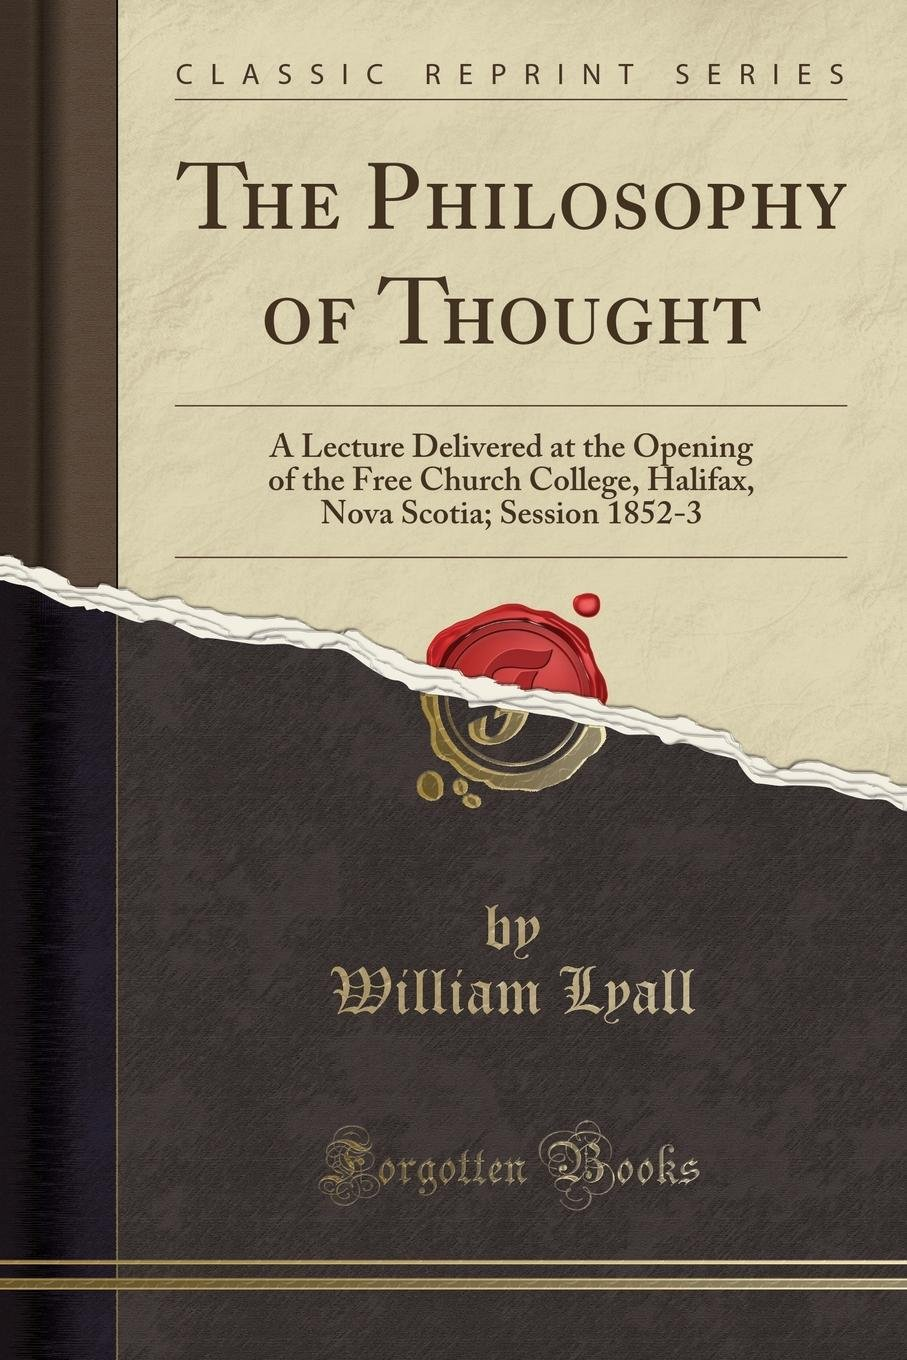 The Philosophy of Thought: A Lecture Delivered at the